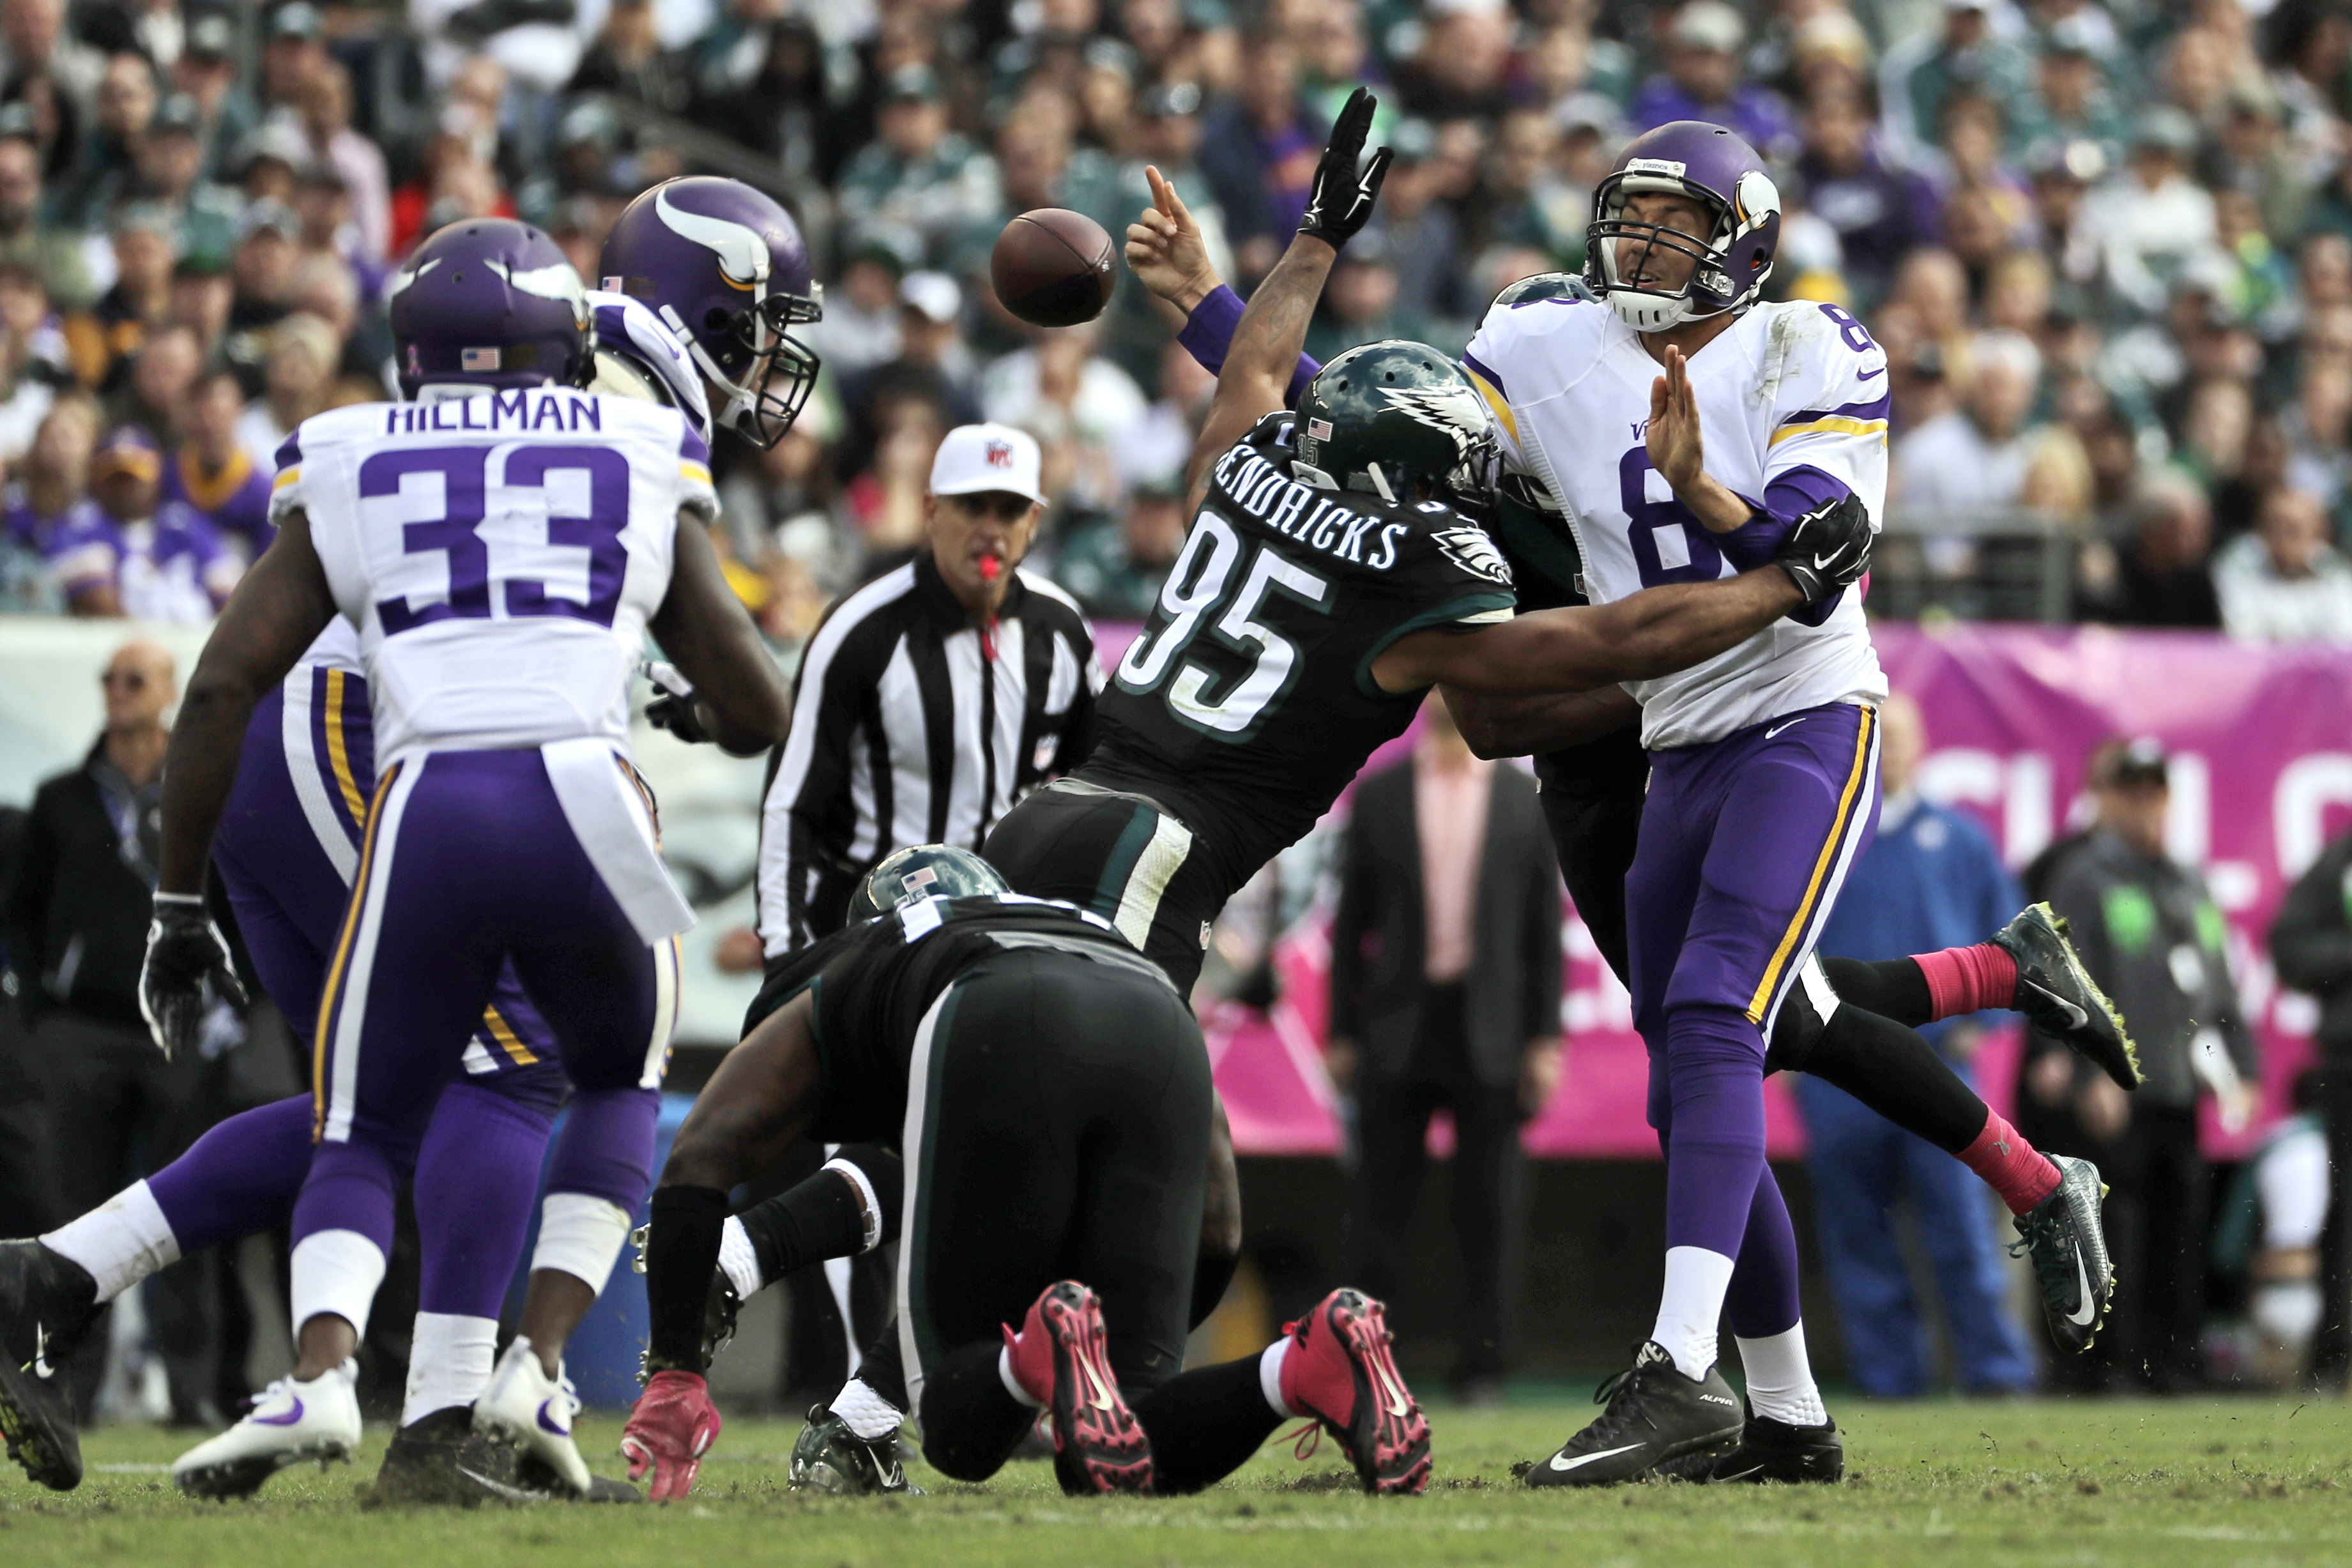 Minnesota Vikings' Sam Bradford, right, fumbles the football as Philadelphia Eagles' Mychal Kendricks tackles during the first half of an NFL football game, Sunday, Oct. 23, 2016, in Philadelphia. (AP Photo/Michael Perez)